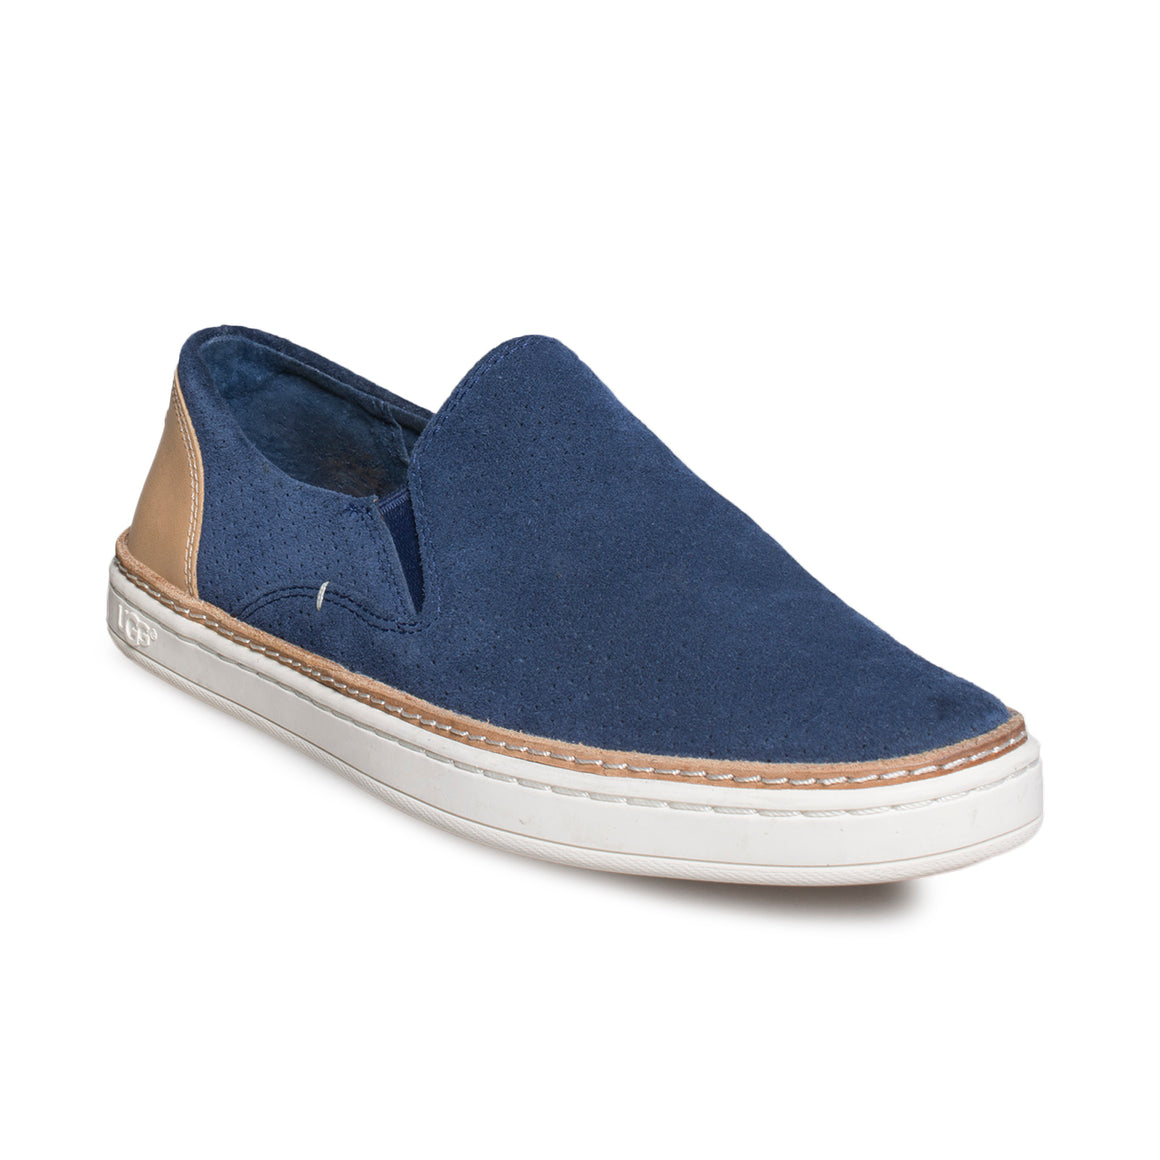 UGG Adley Perf Marine Shoes - Women's